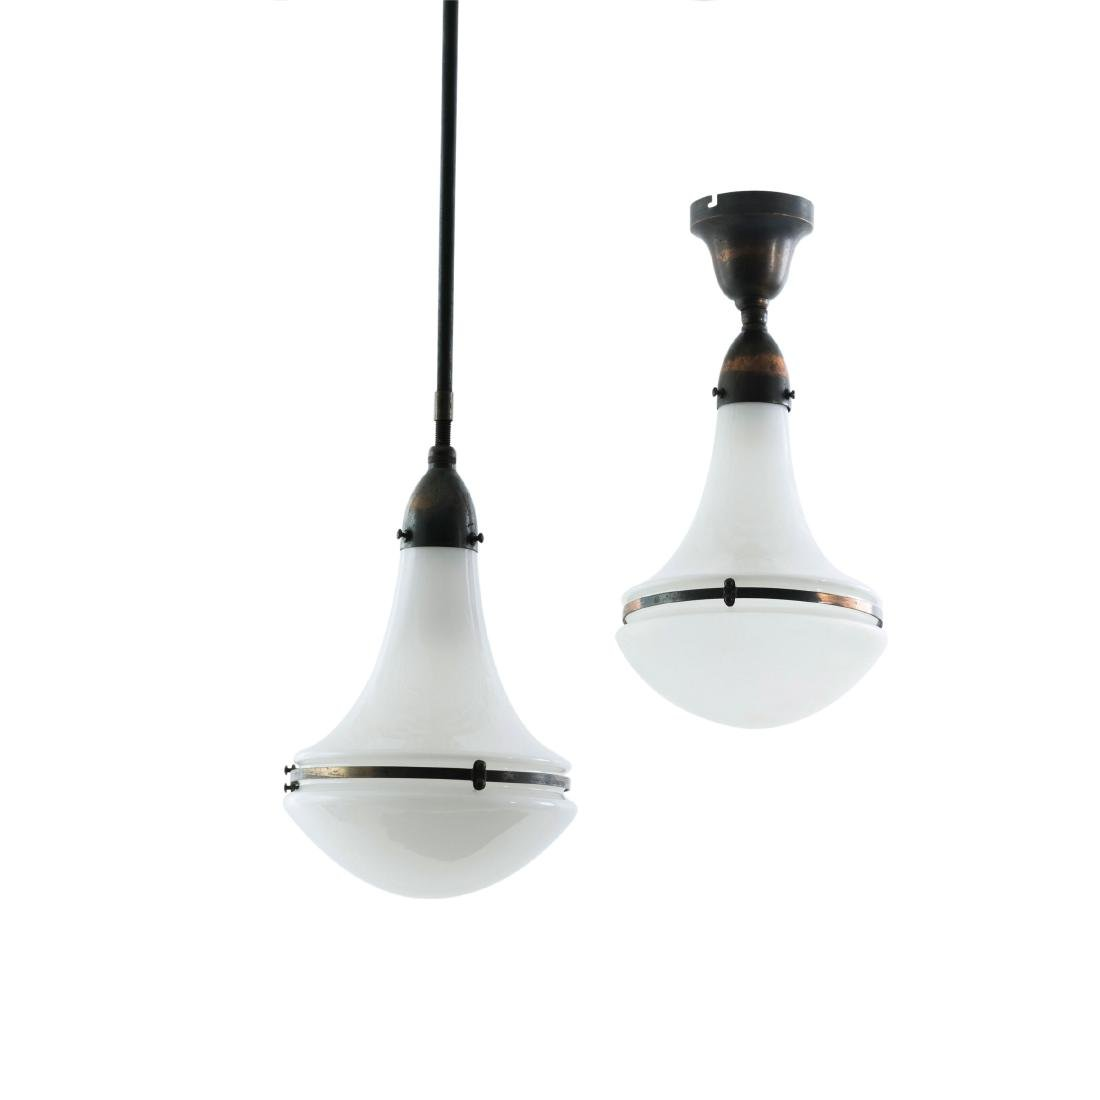 Two ceiling lights, c. 1925